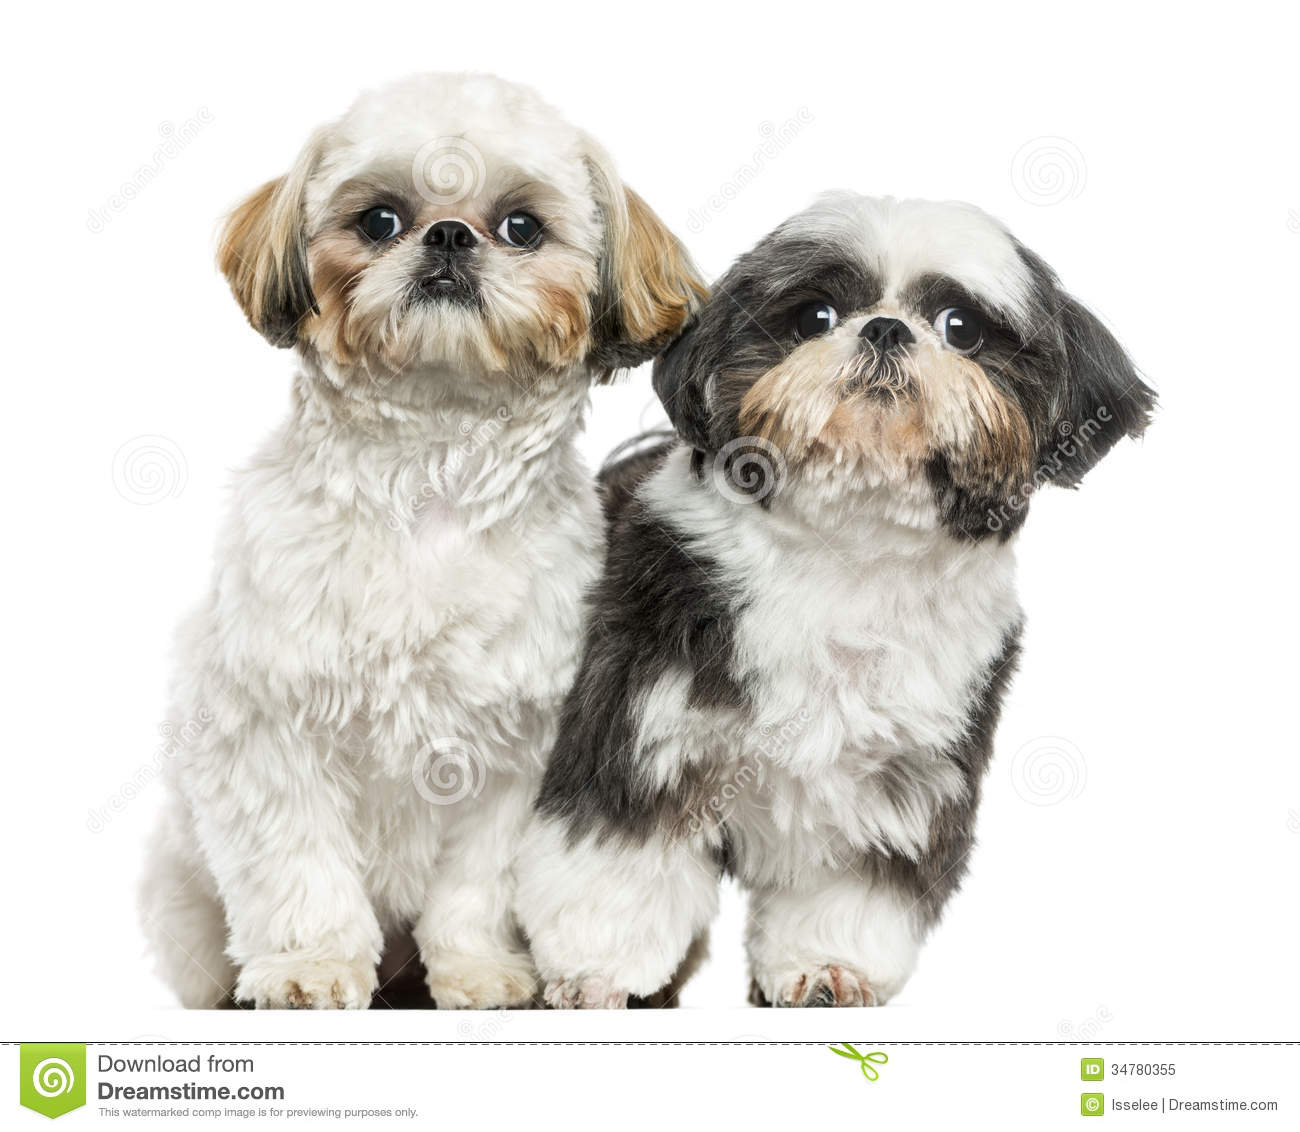 two shih tzus sitting next to each other looking at the camera